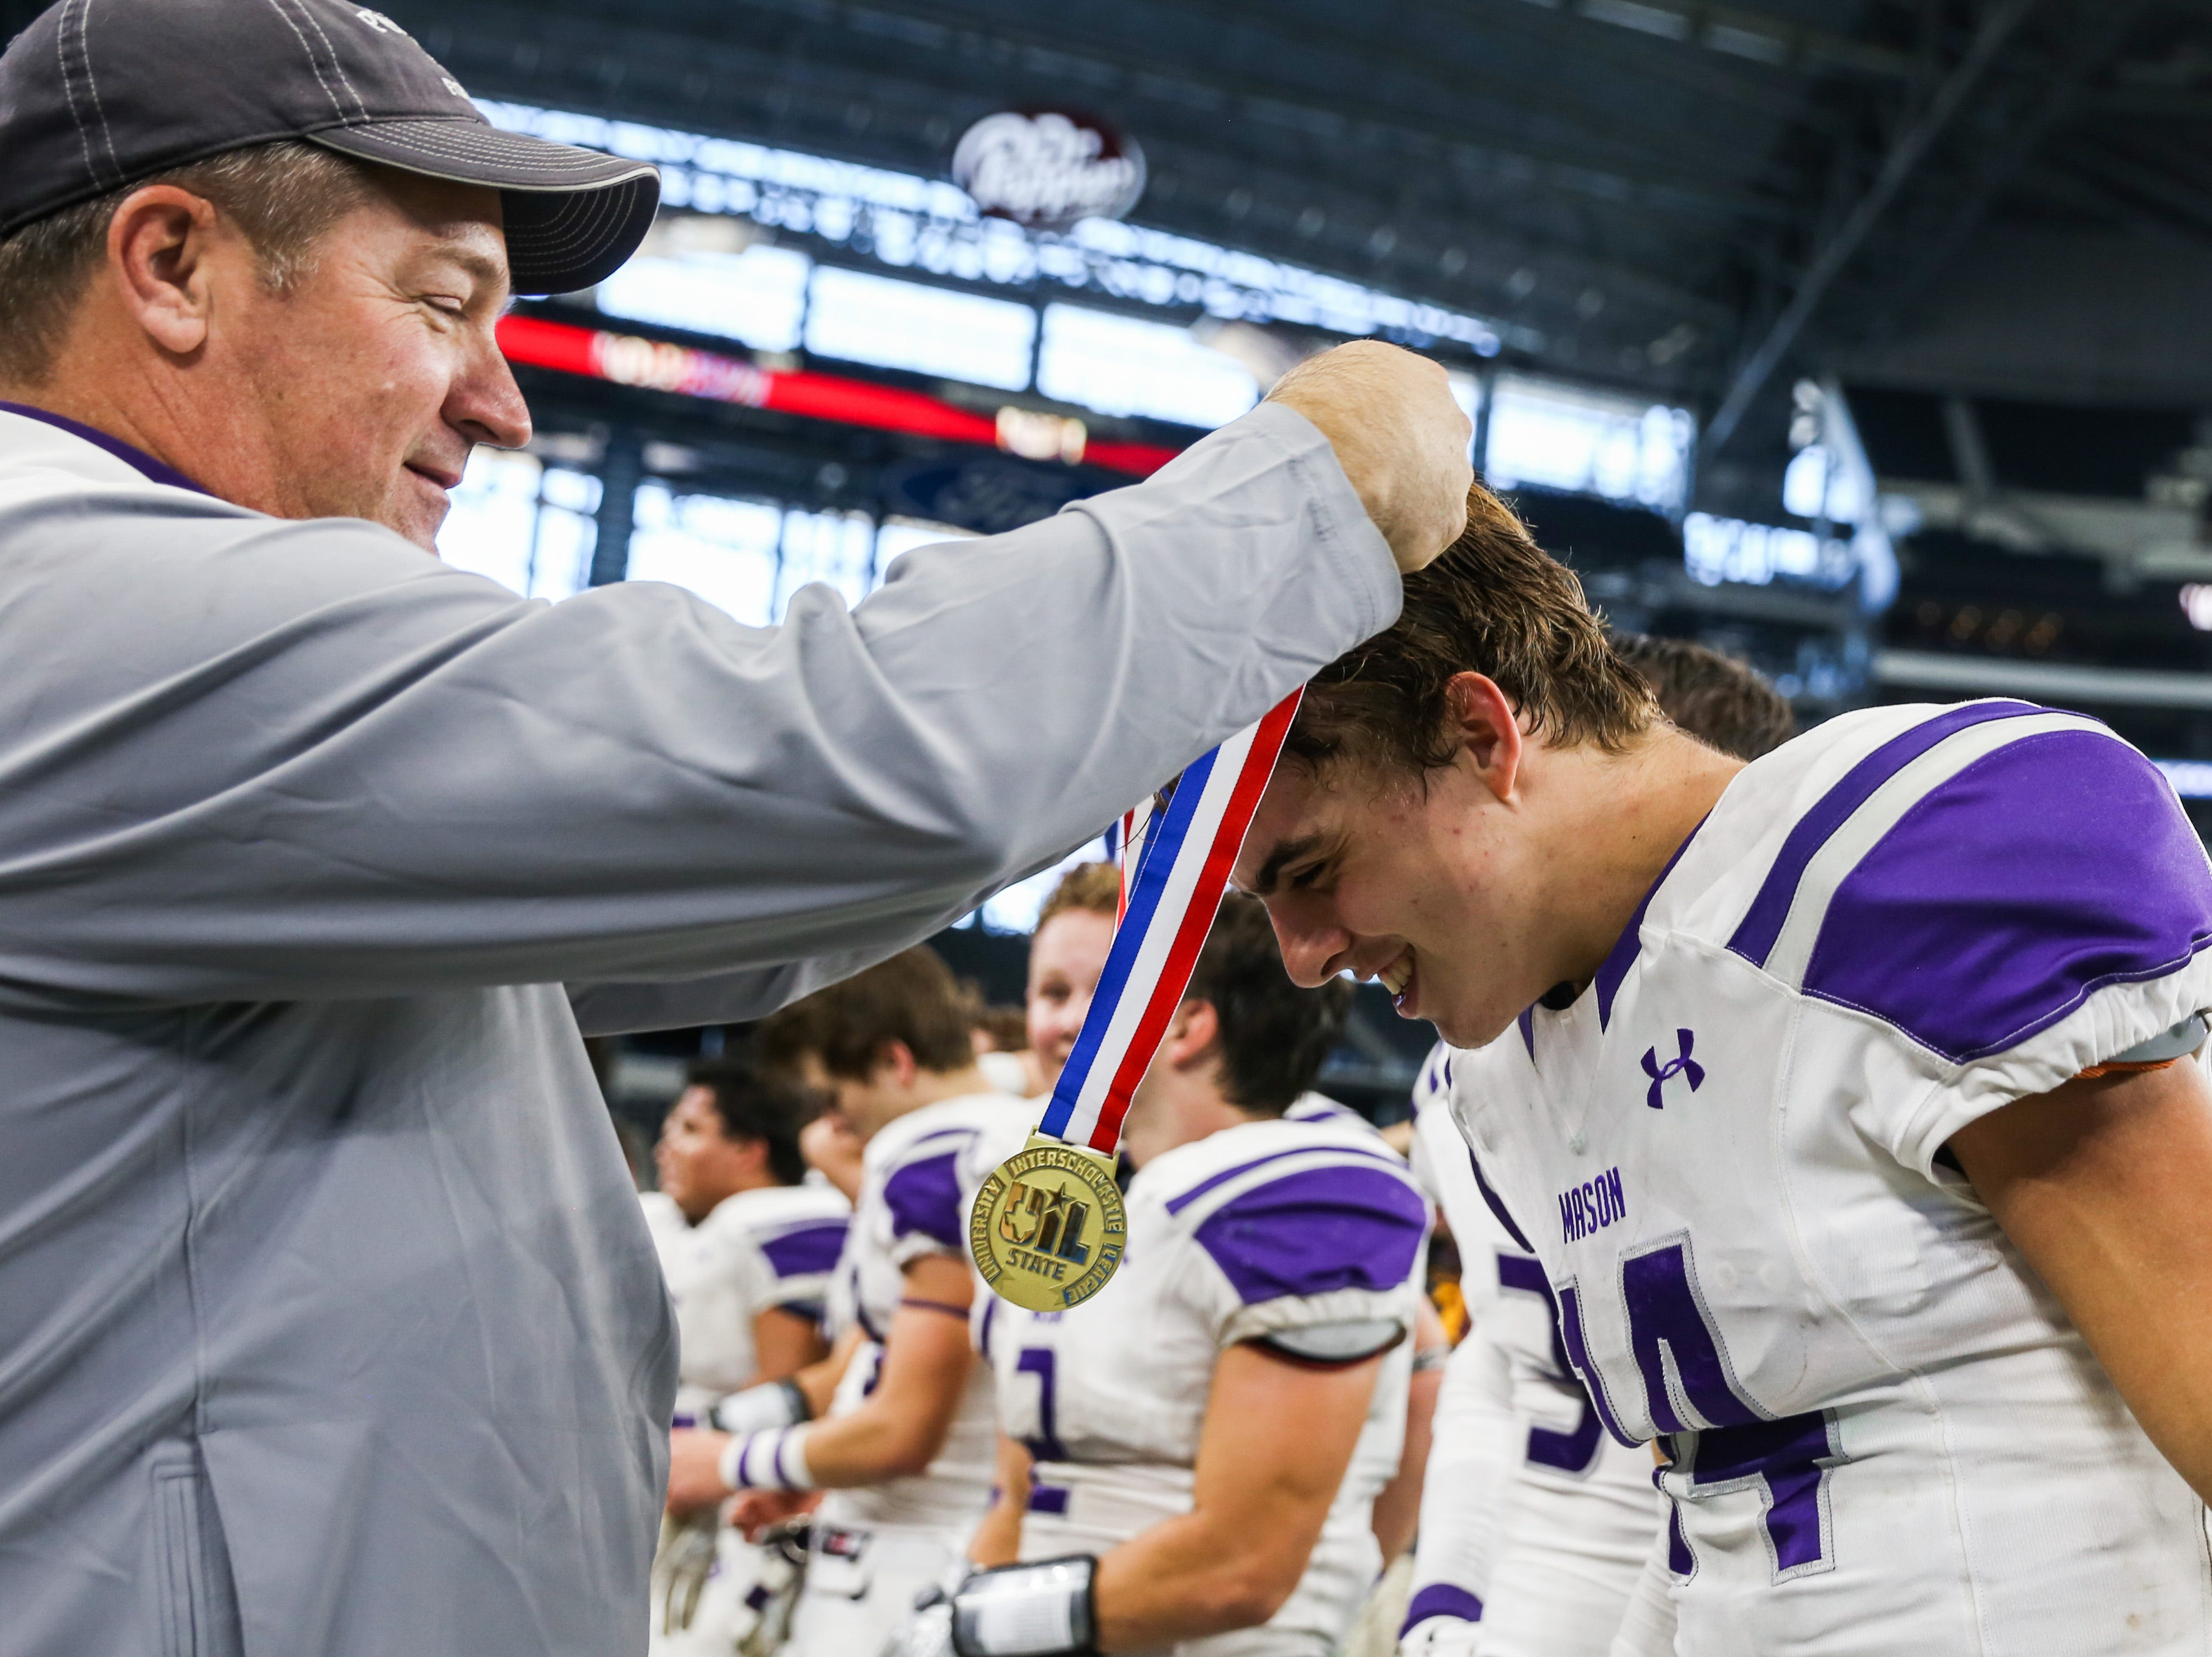 A championship metal is put around Mason's Otto Wofford after the victory over New Deal Thursday, Dec. 20, at the AT&T Stadium.